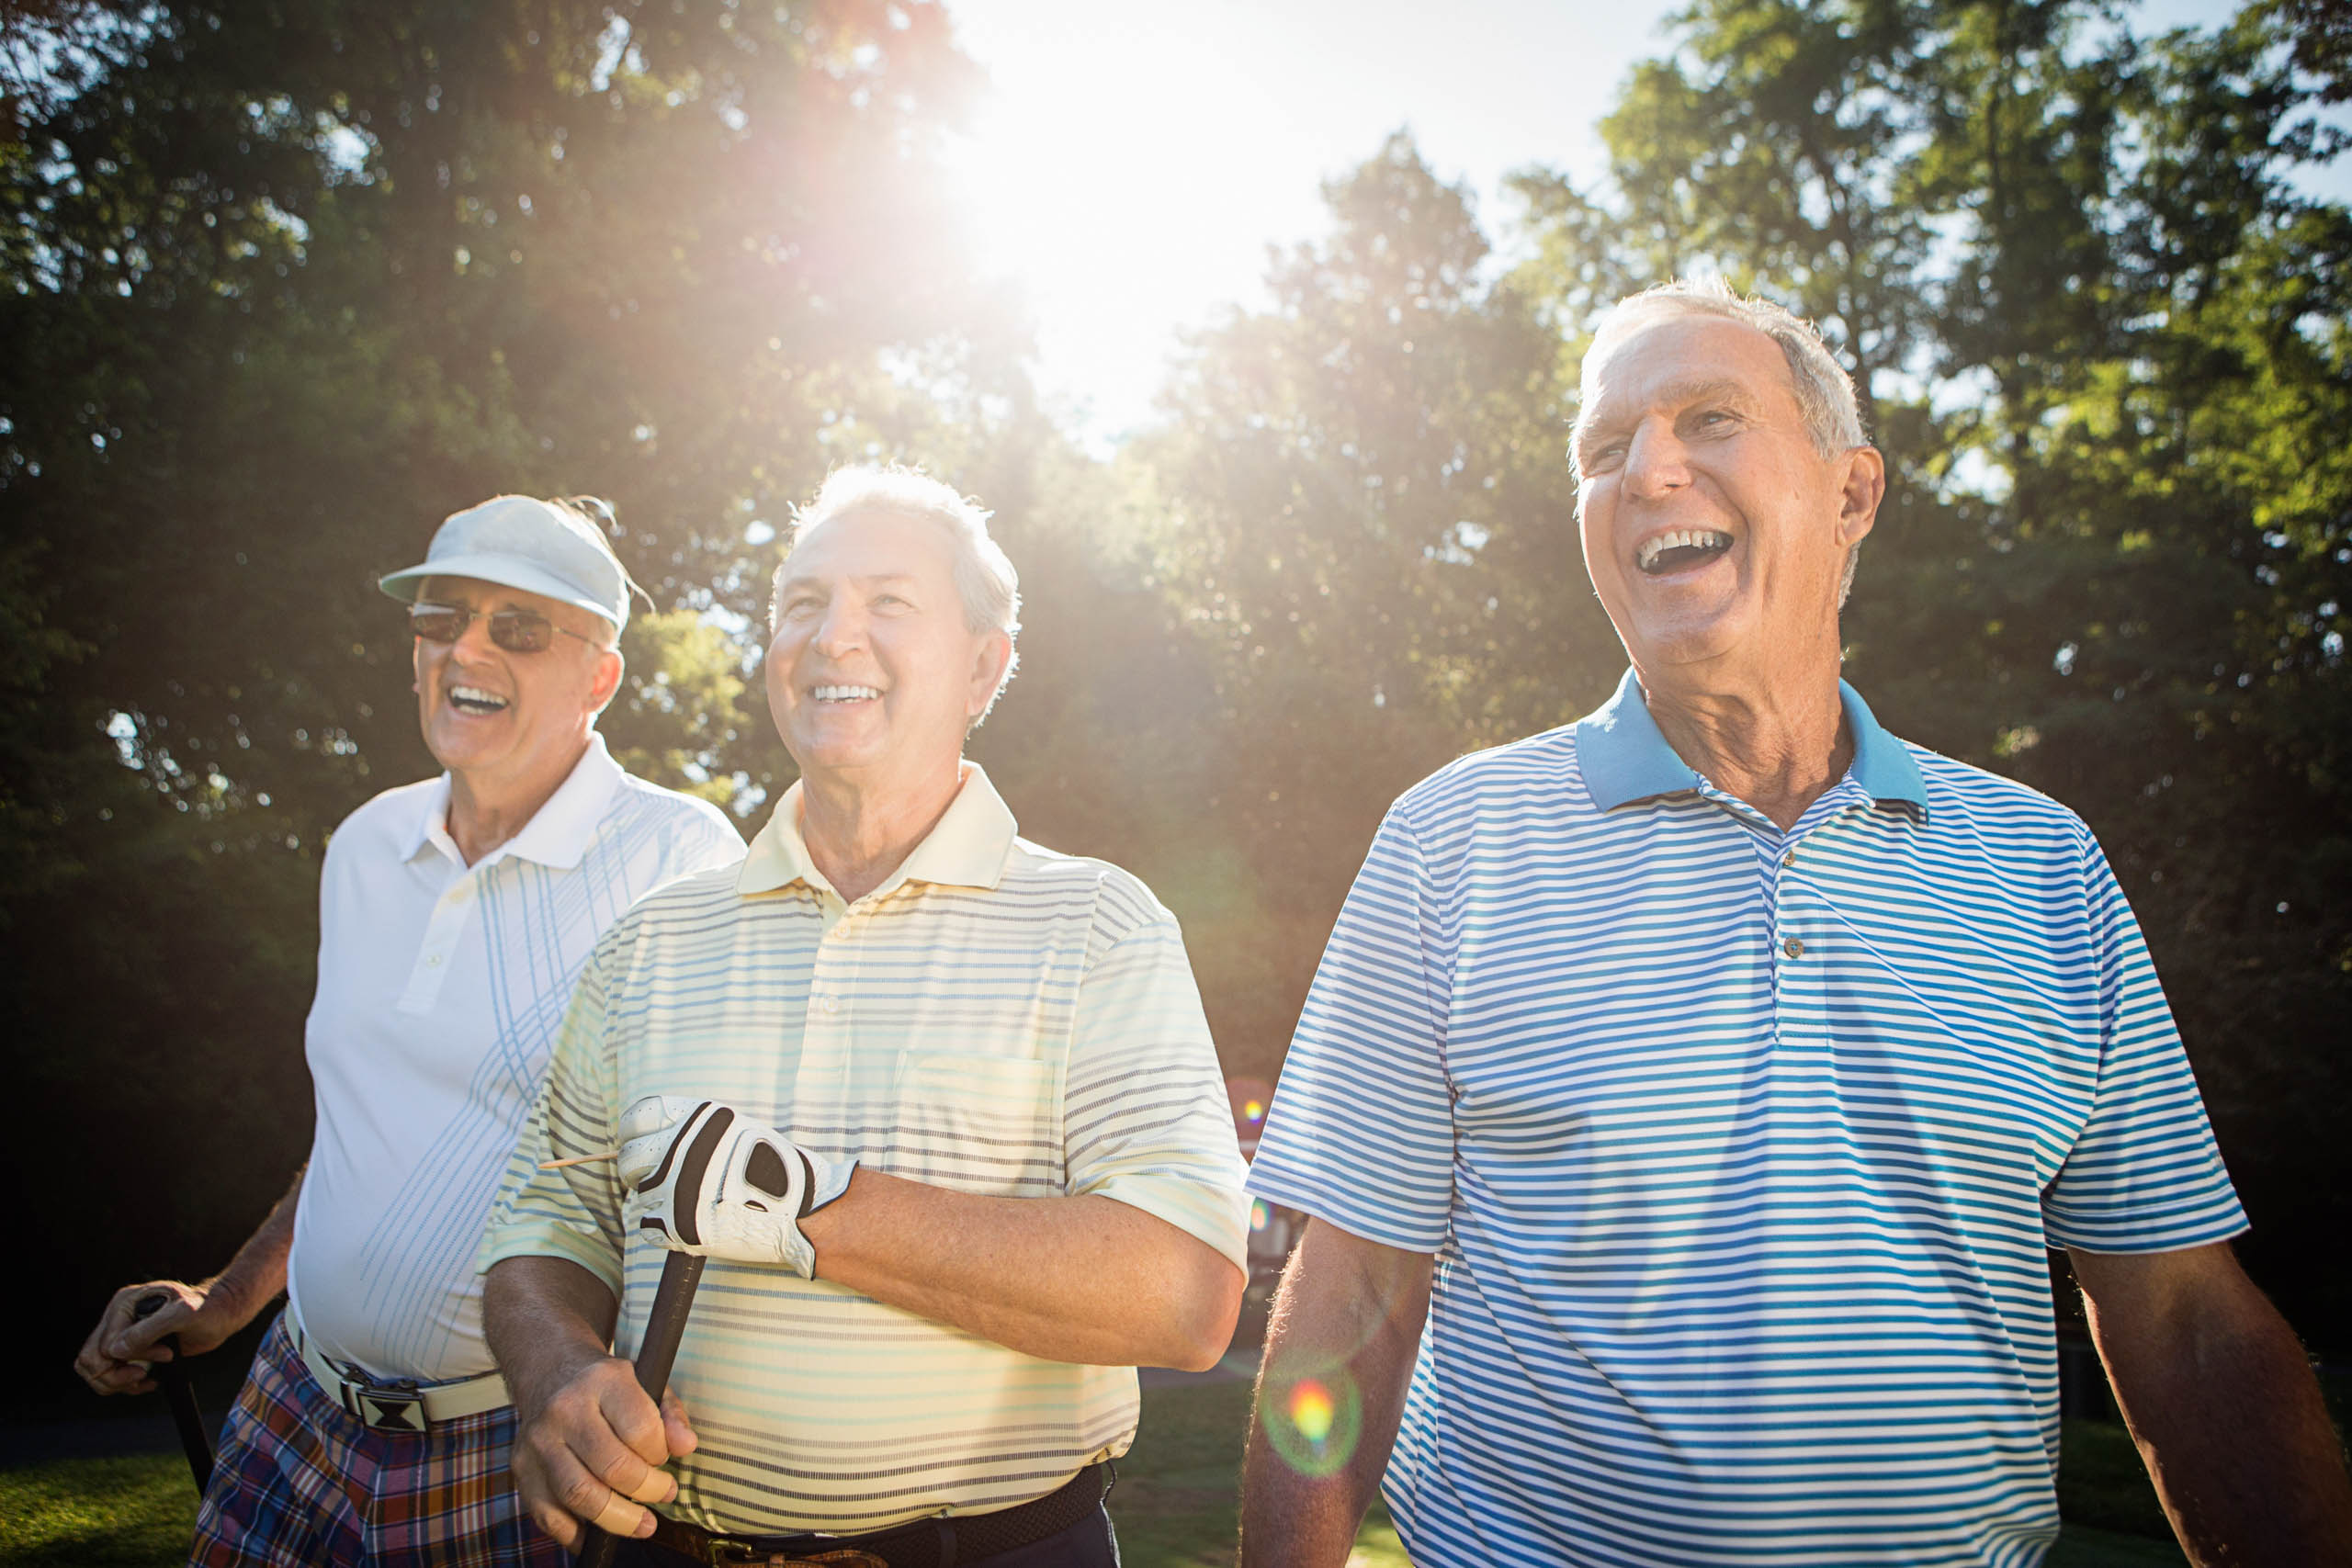 Three senior men on golf course